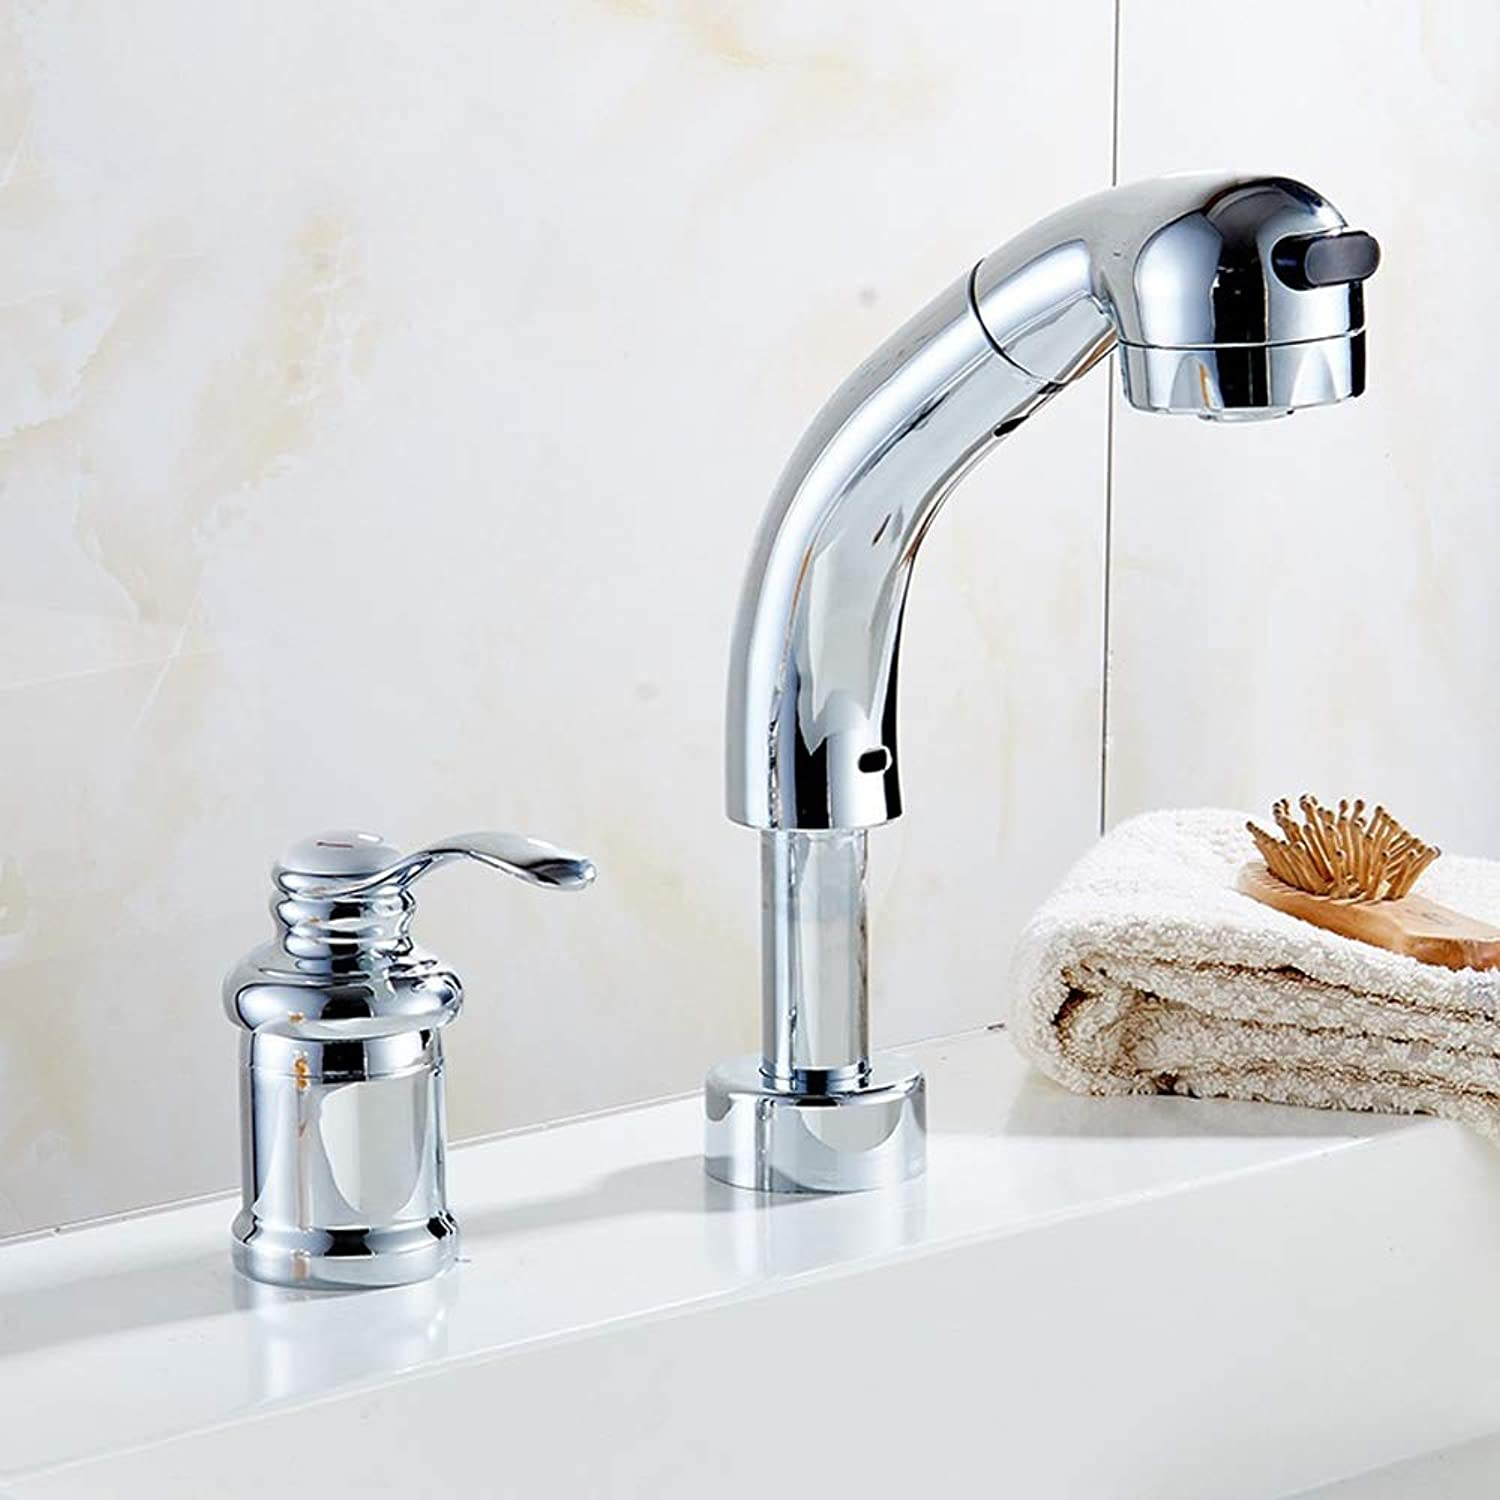 AXWT Split Double Hole Cold Heat Faucet Pull Type Basin Water-tap Telescopic Washbasin Tap With Shower Nozzle Bathroom Taps Pull-out Mixer Sink Faucet